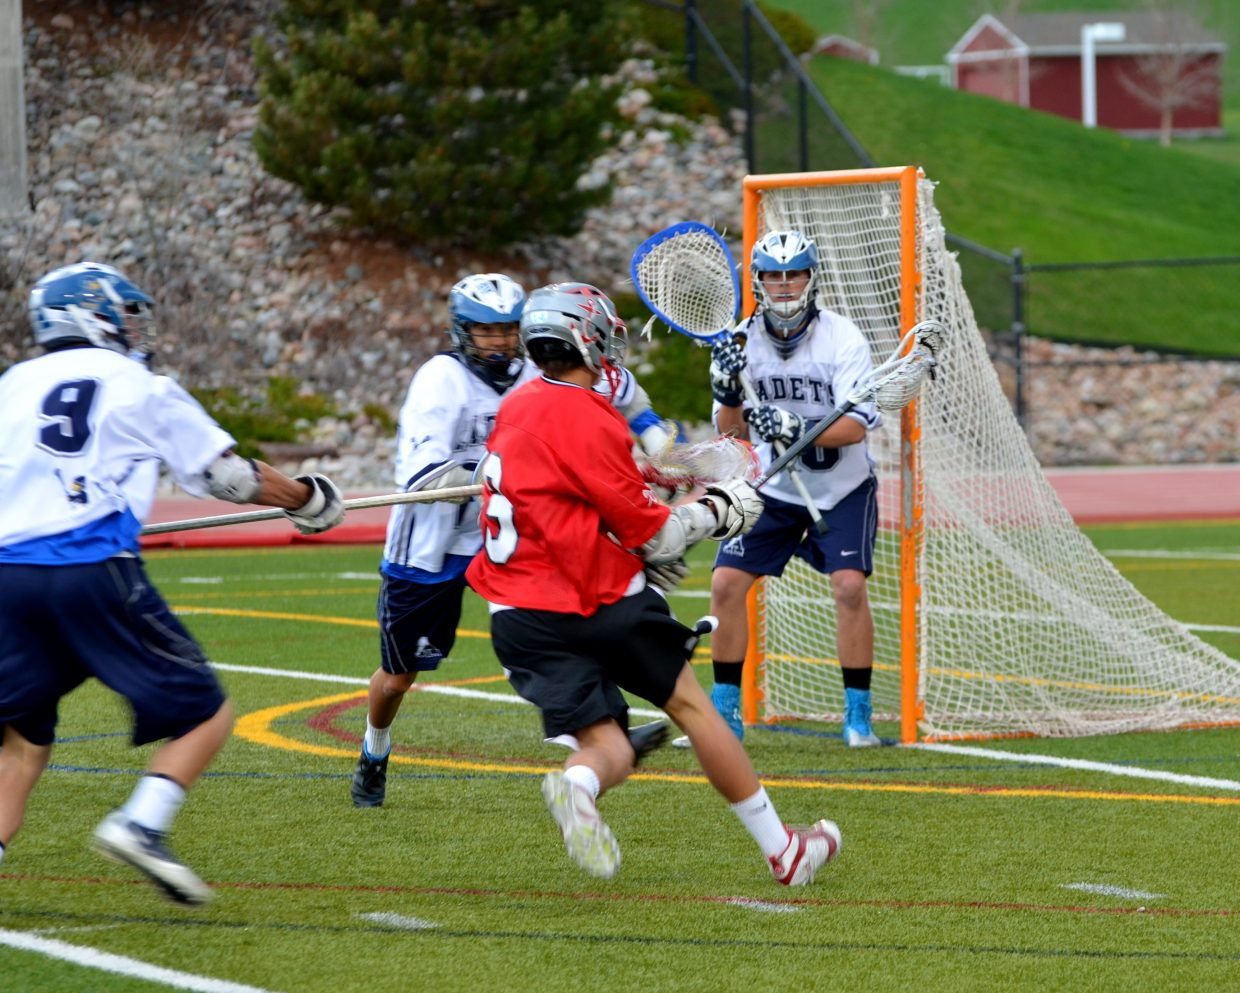 Thomas Tarcha takes a shot in Wednesday's Final Four game against Air Academy.